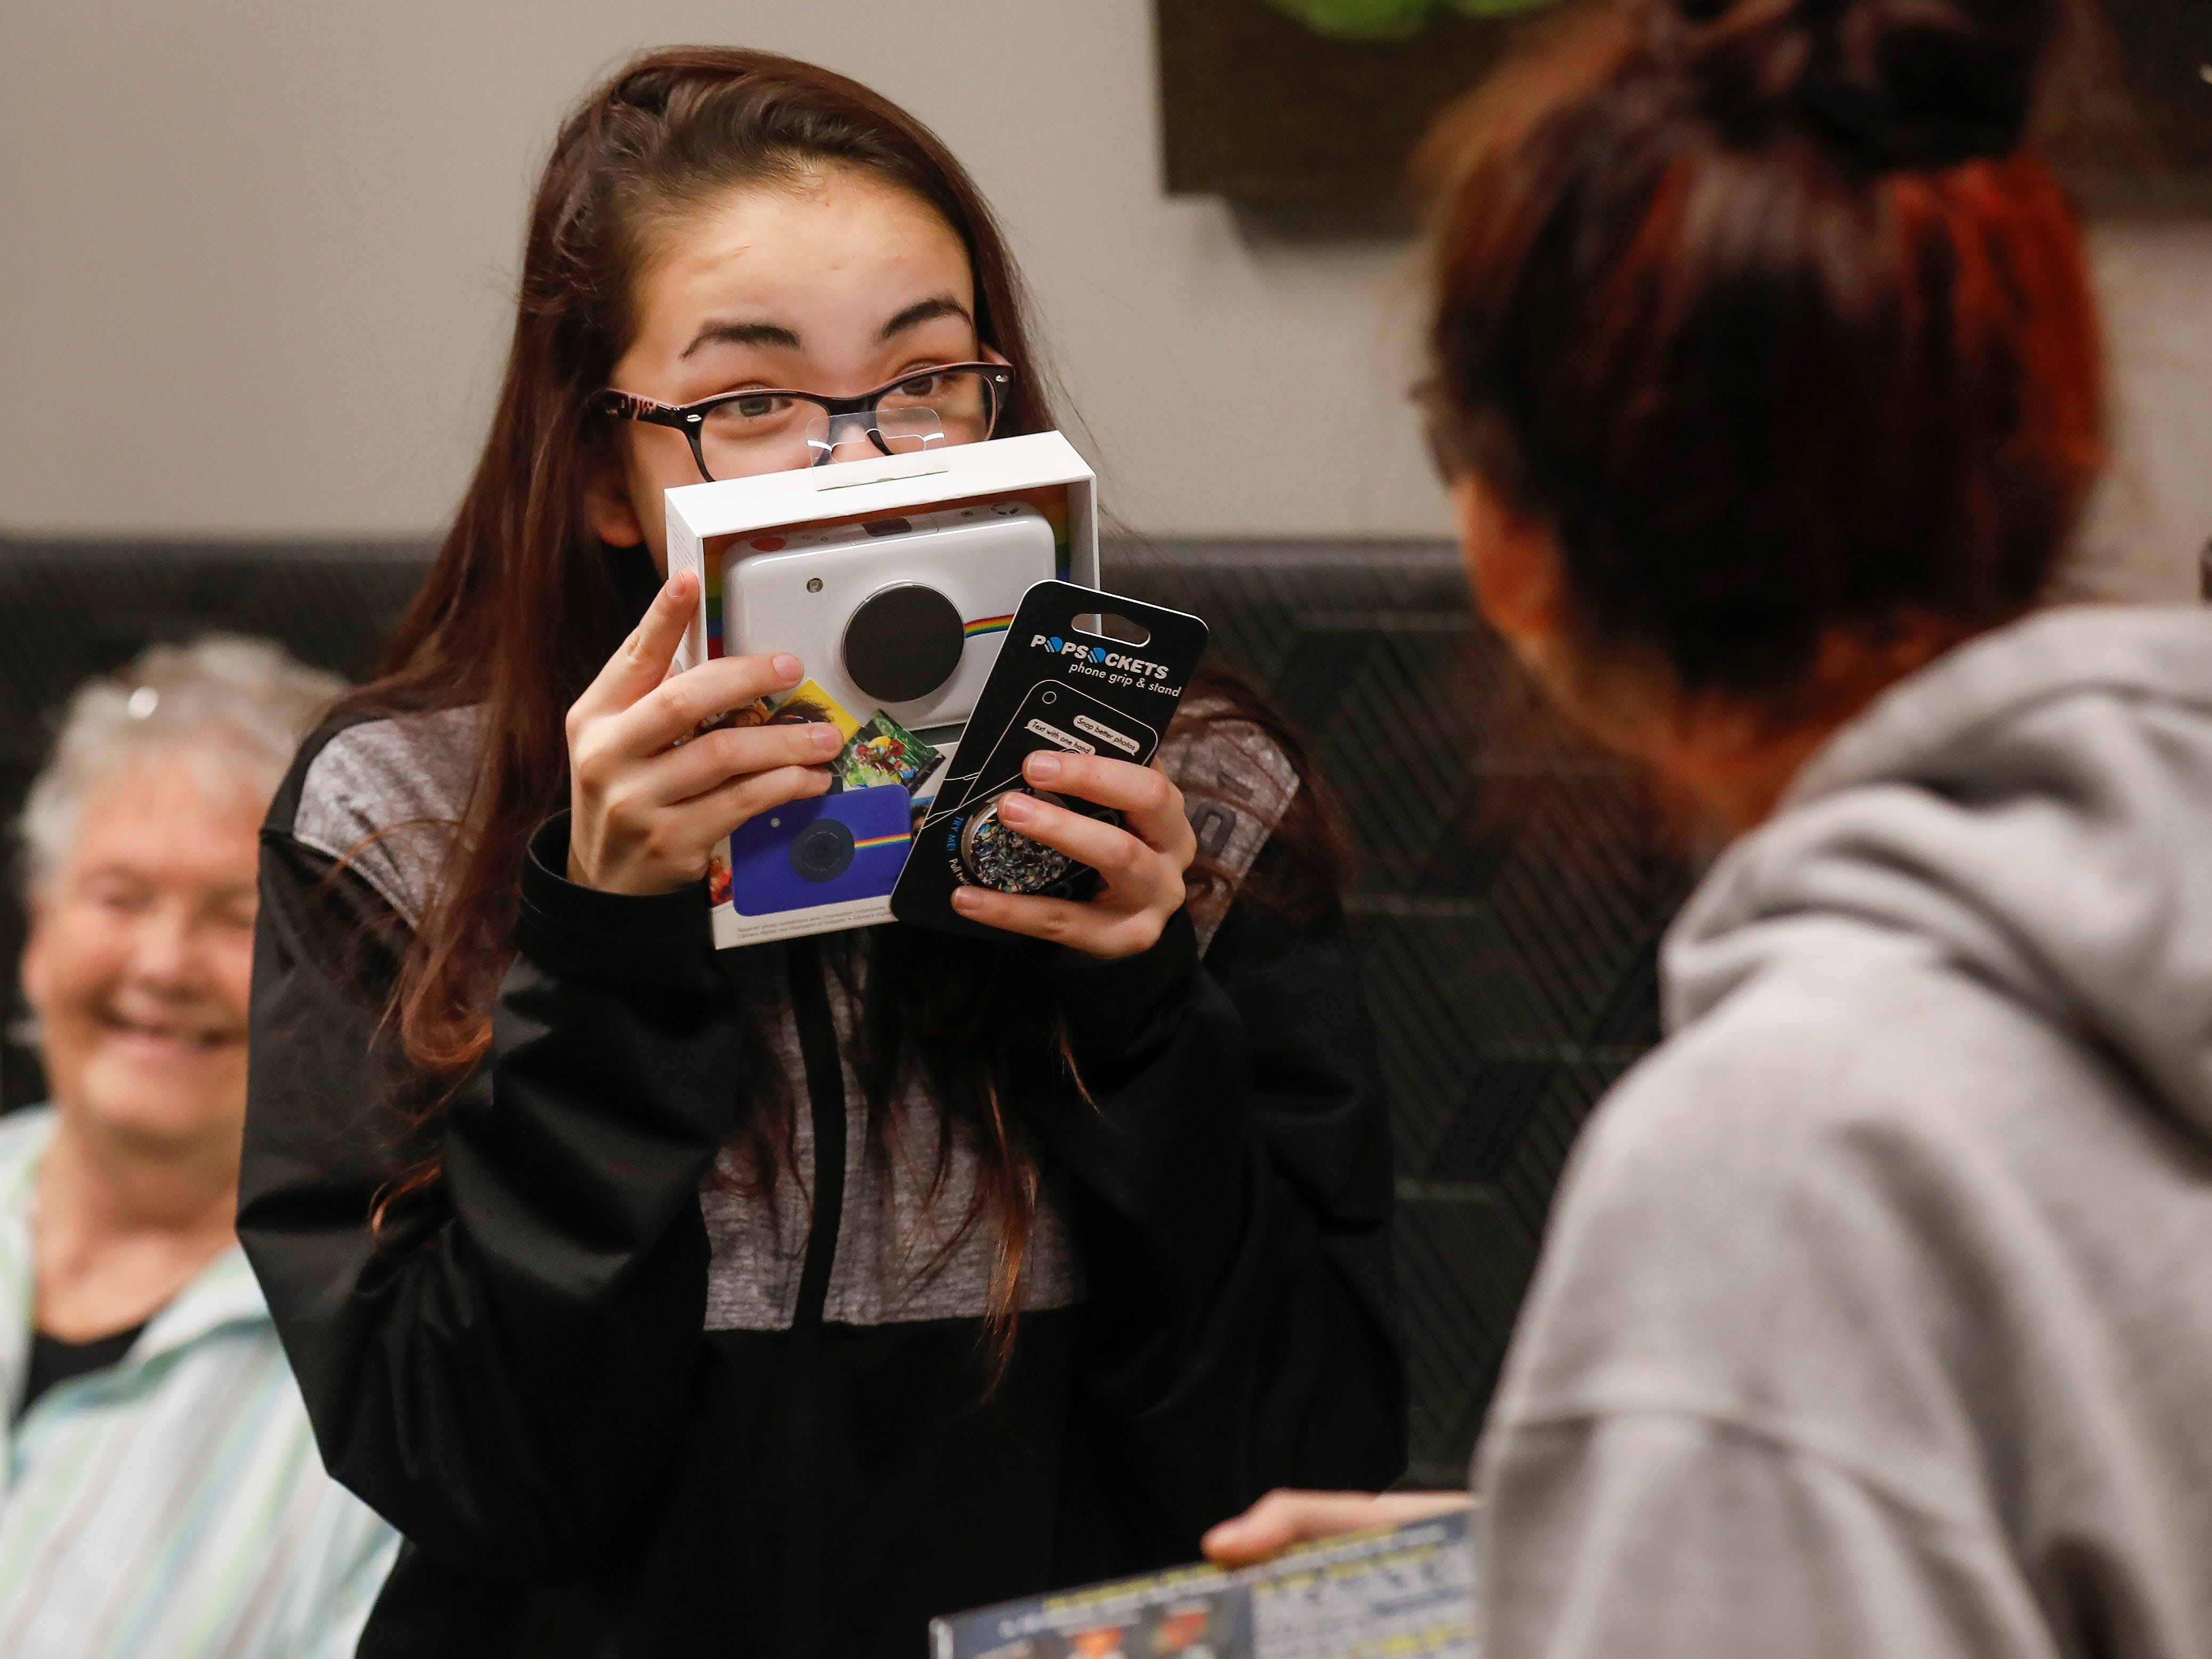 Abigail Sahagun, center, reacts excitedly as she looks at gifts that were given to her and her sisters by employees of J.D. Byrider on Wednesday, Dec. 19, 2018. The Sahaguns' grandmother, Barbara Foster, was killed during a road rage incident on Nov. 20.